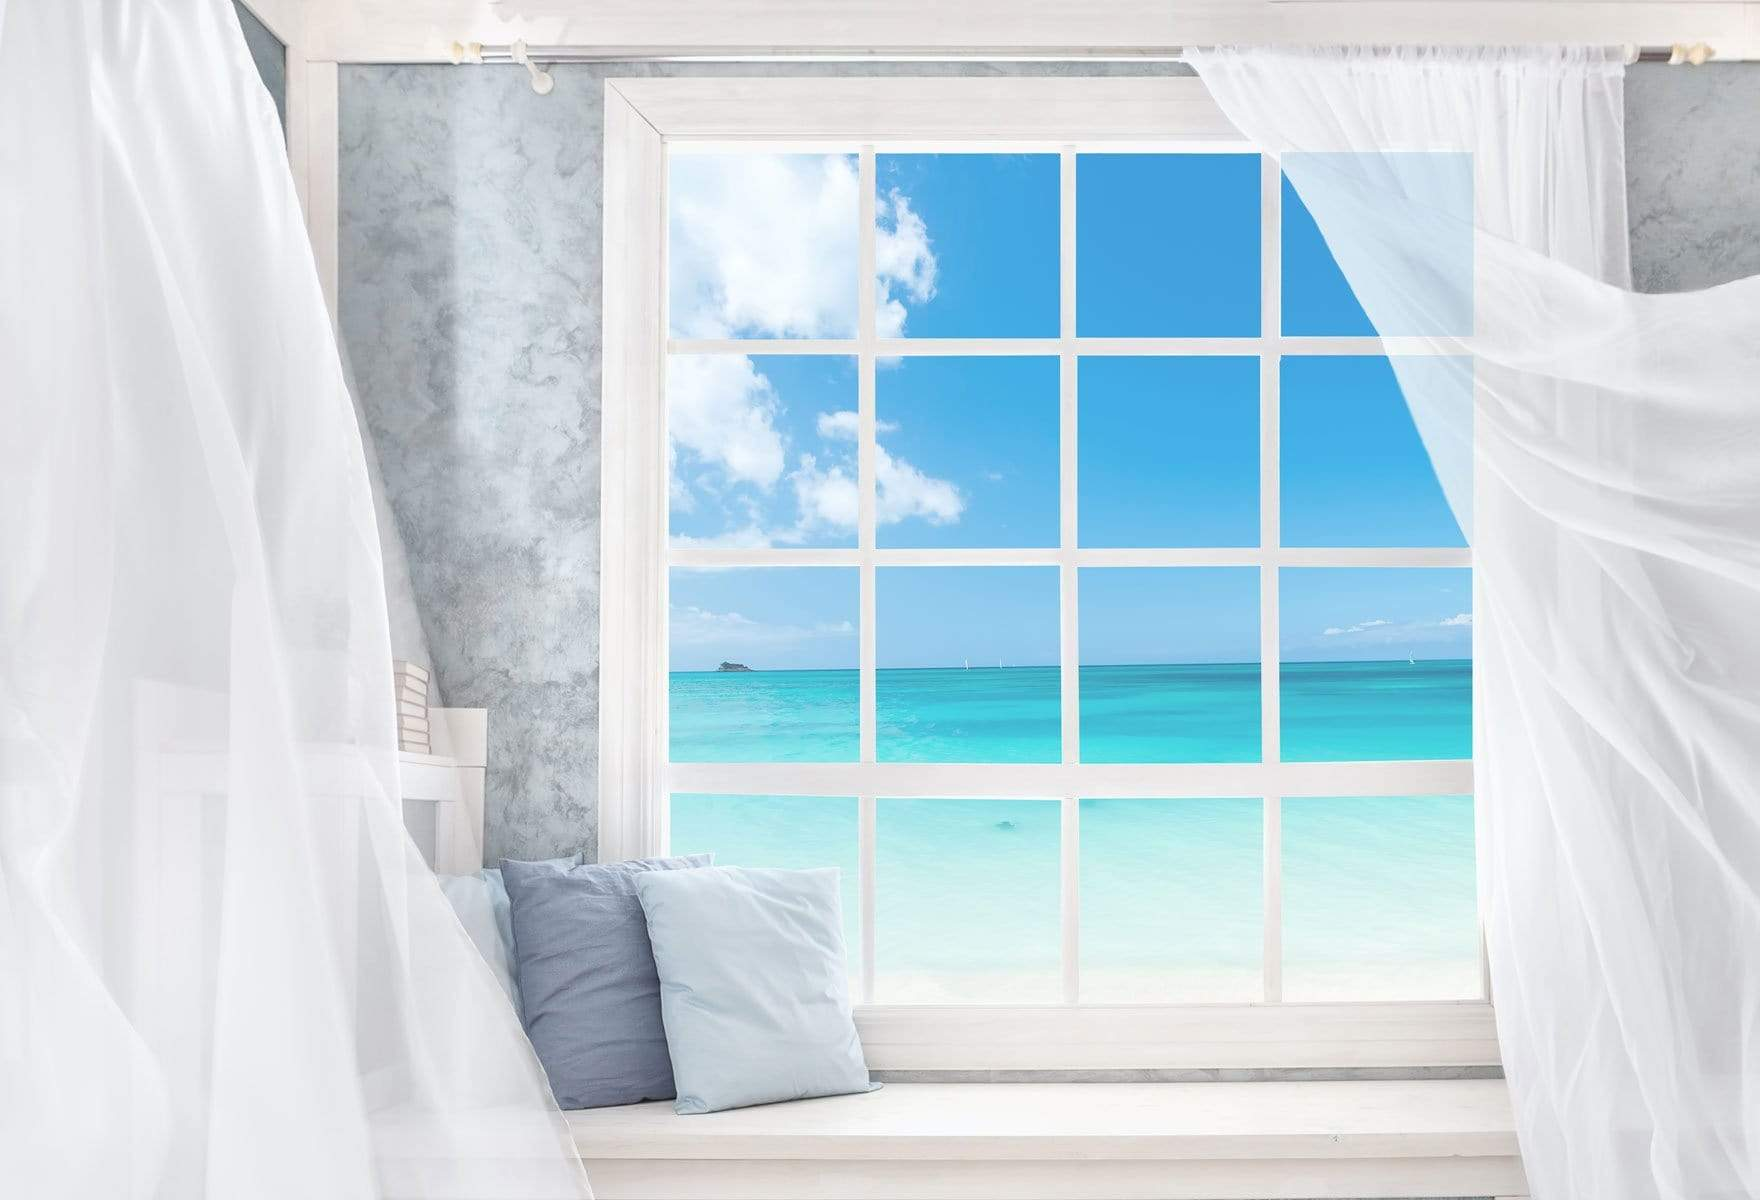 Load image into Gallery viewer, Katebackdrop£ºKate Sea View Outside Window Summer Backdrop Designed by JFCC